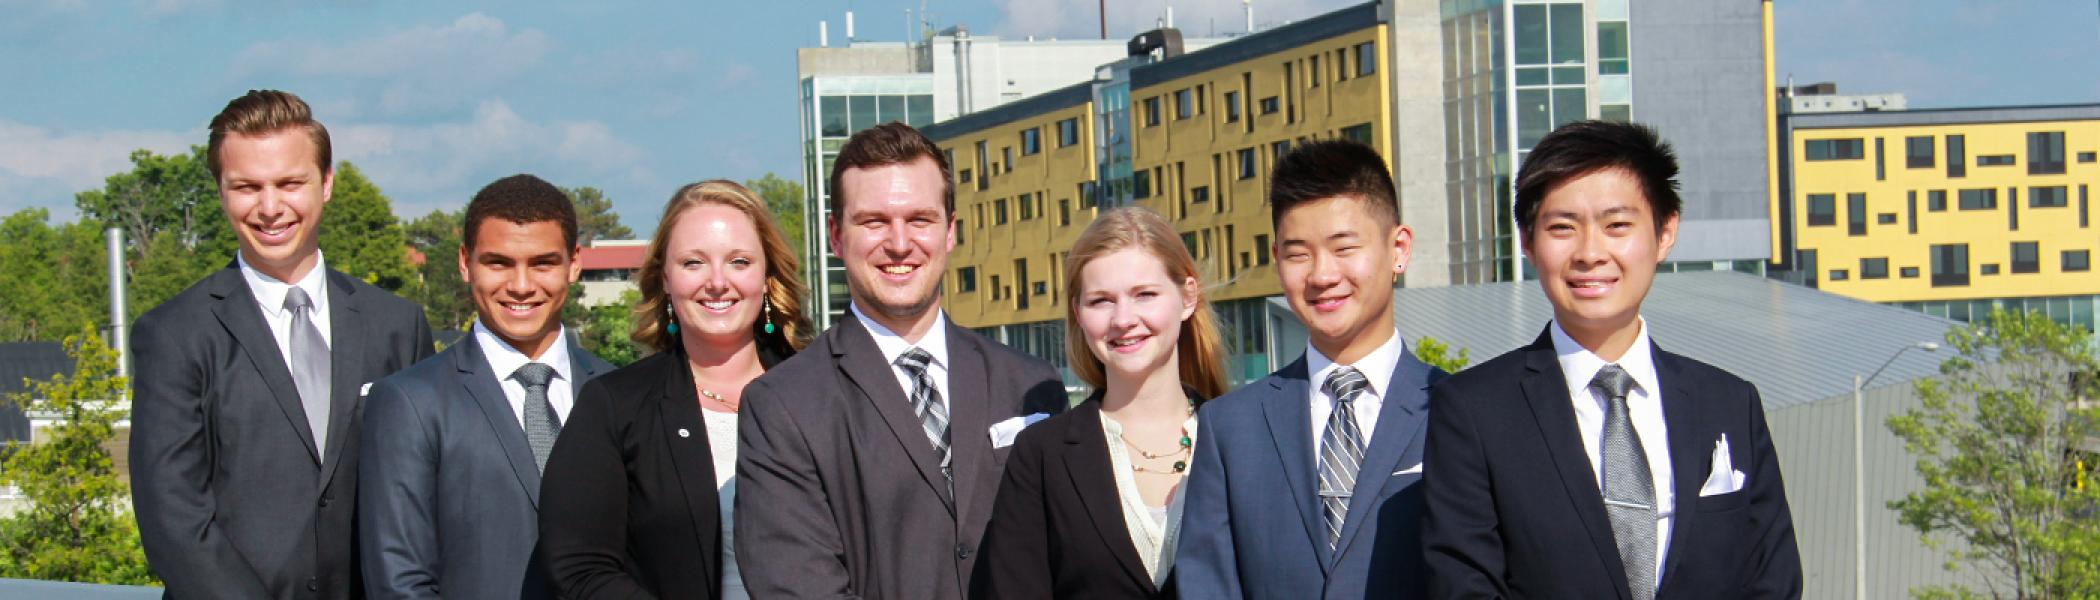 6 Students in business suits smiling at the camea standing on the Faryon bridge in the sunlight